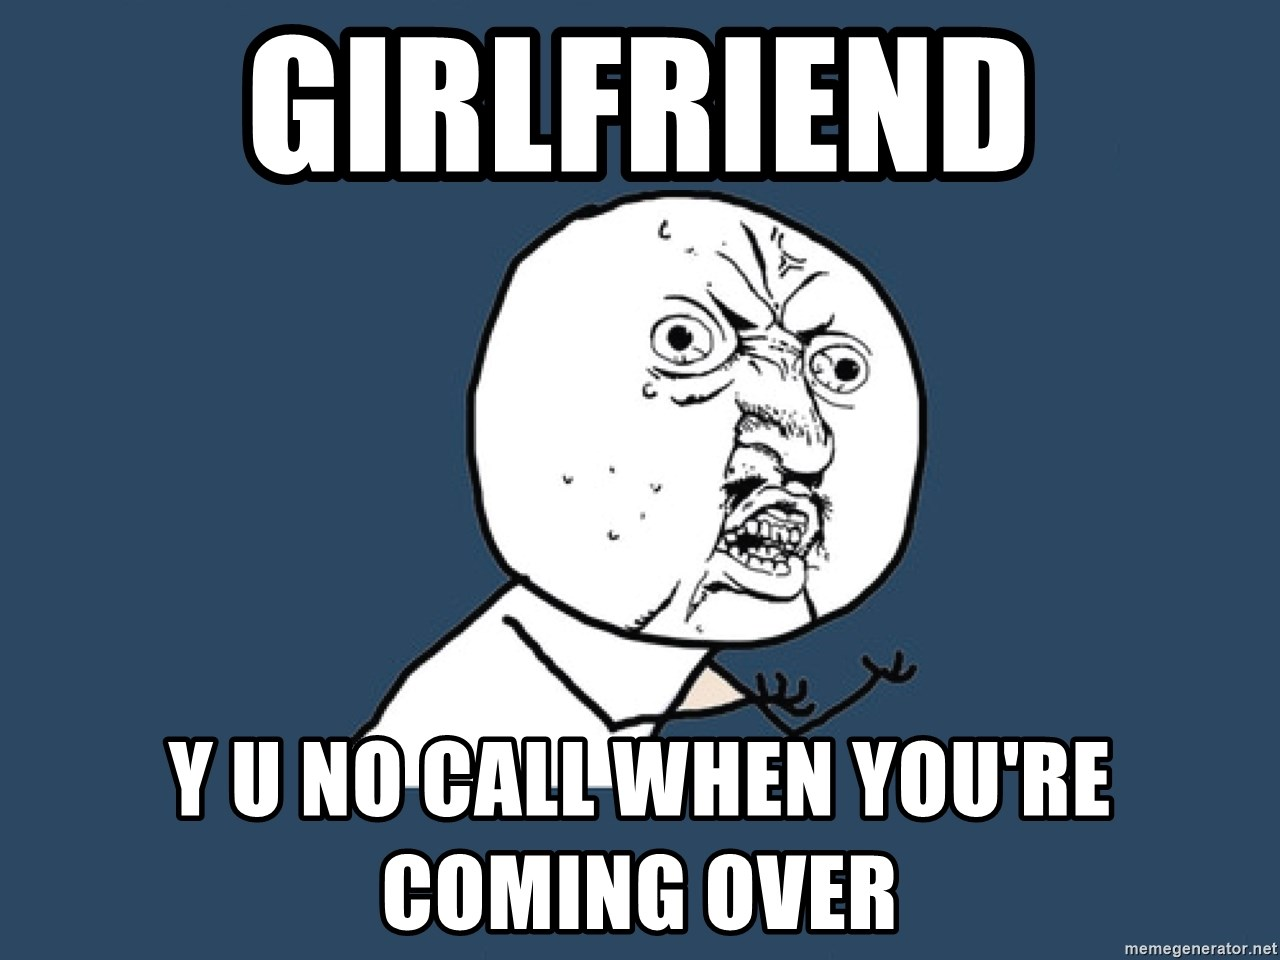 Y U No - Girlfriend Y U NO call when you're coming over